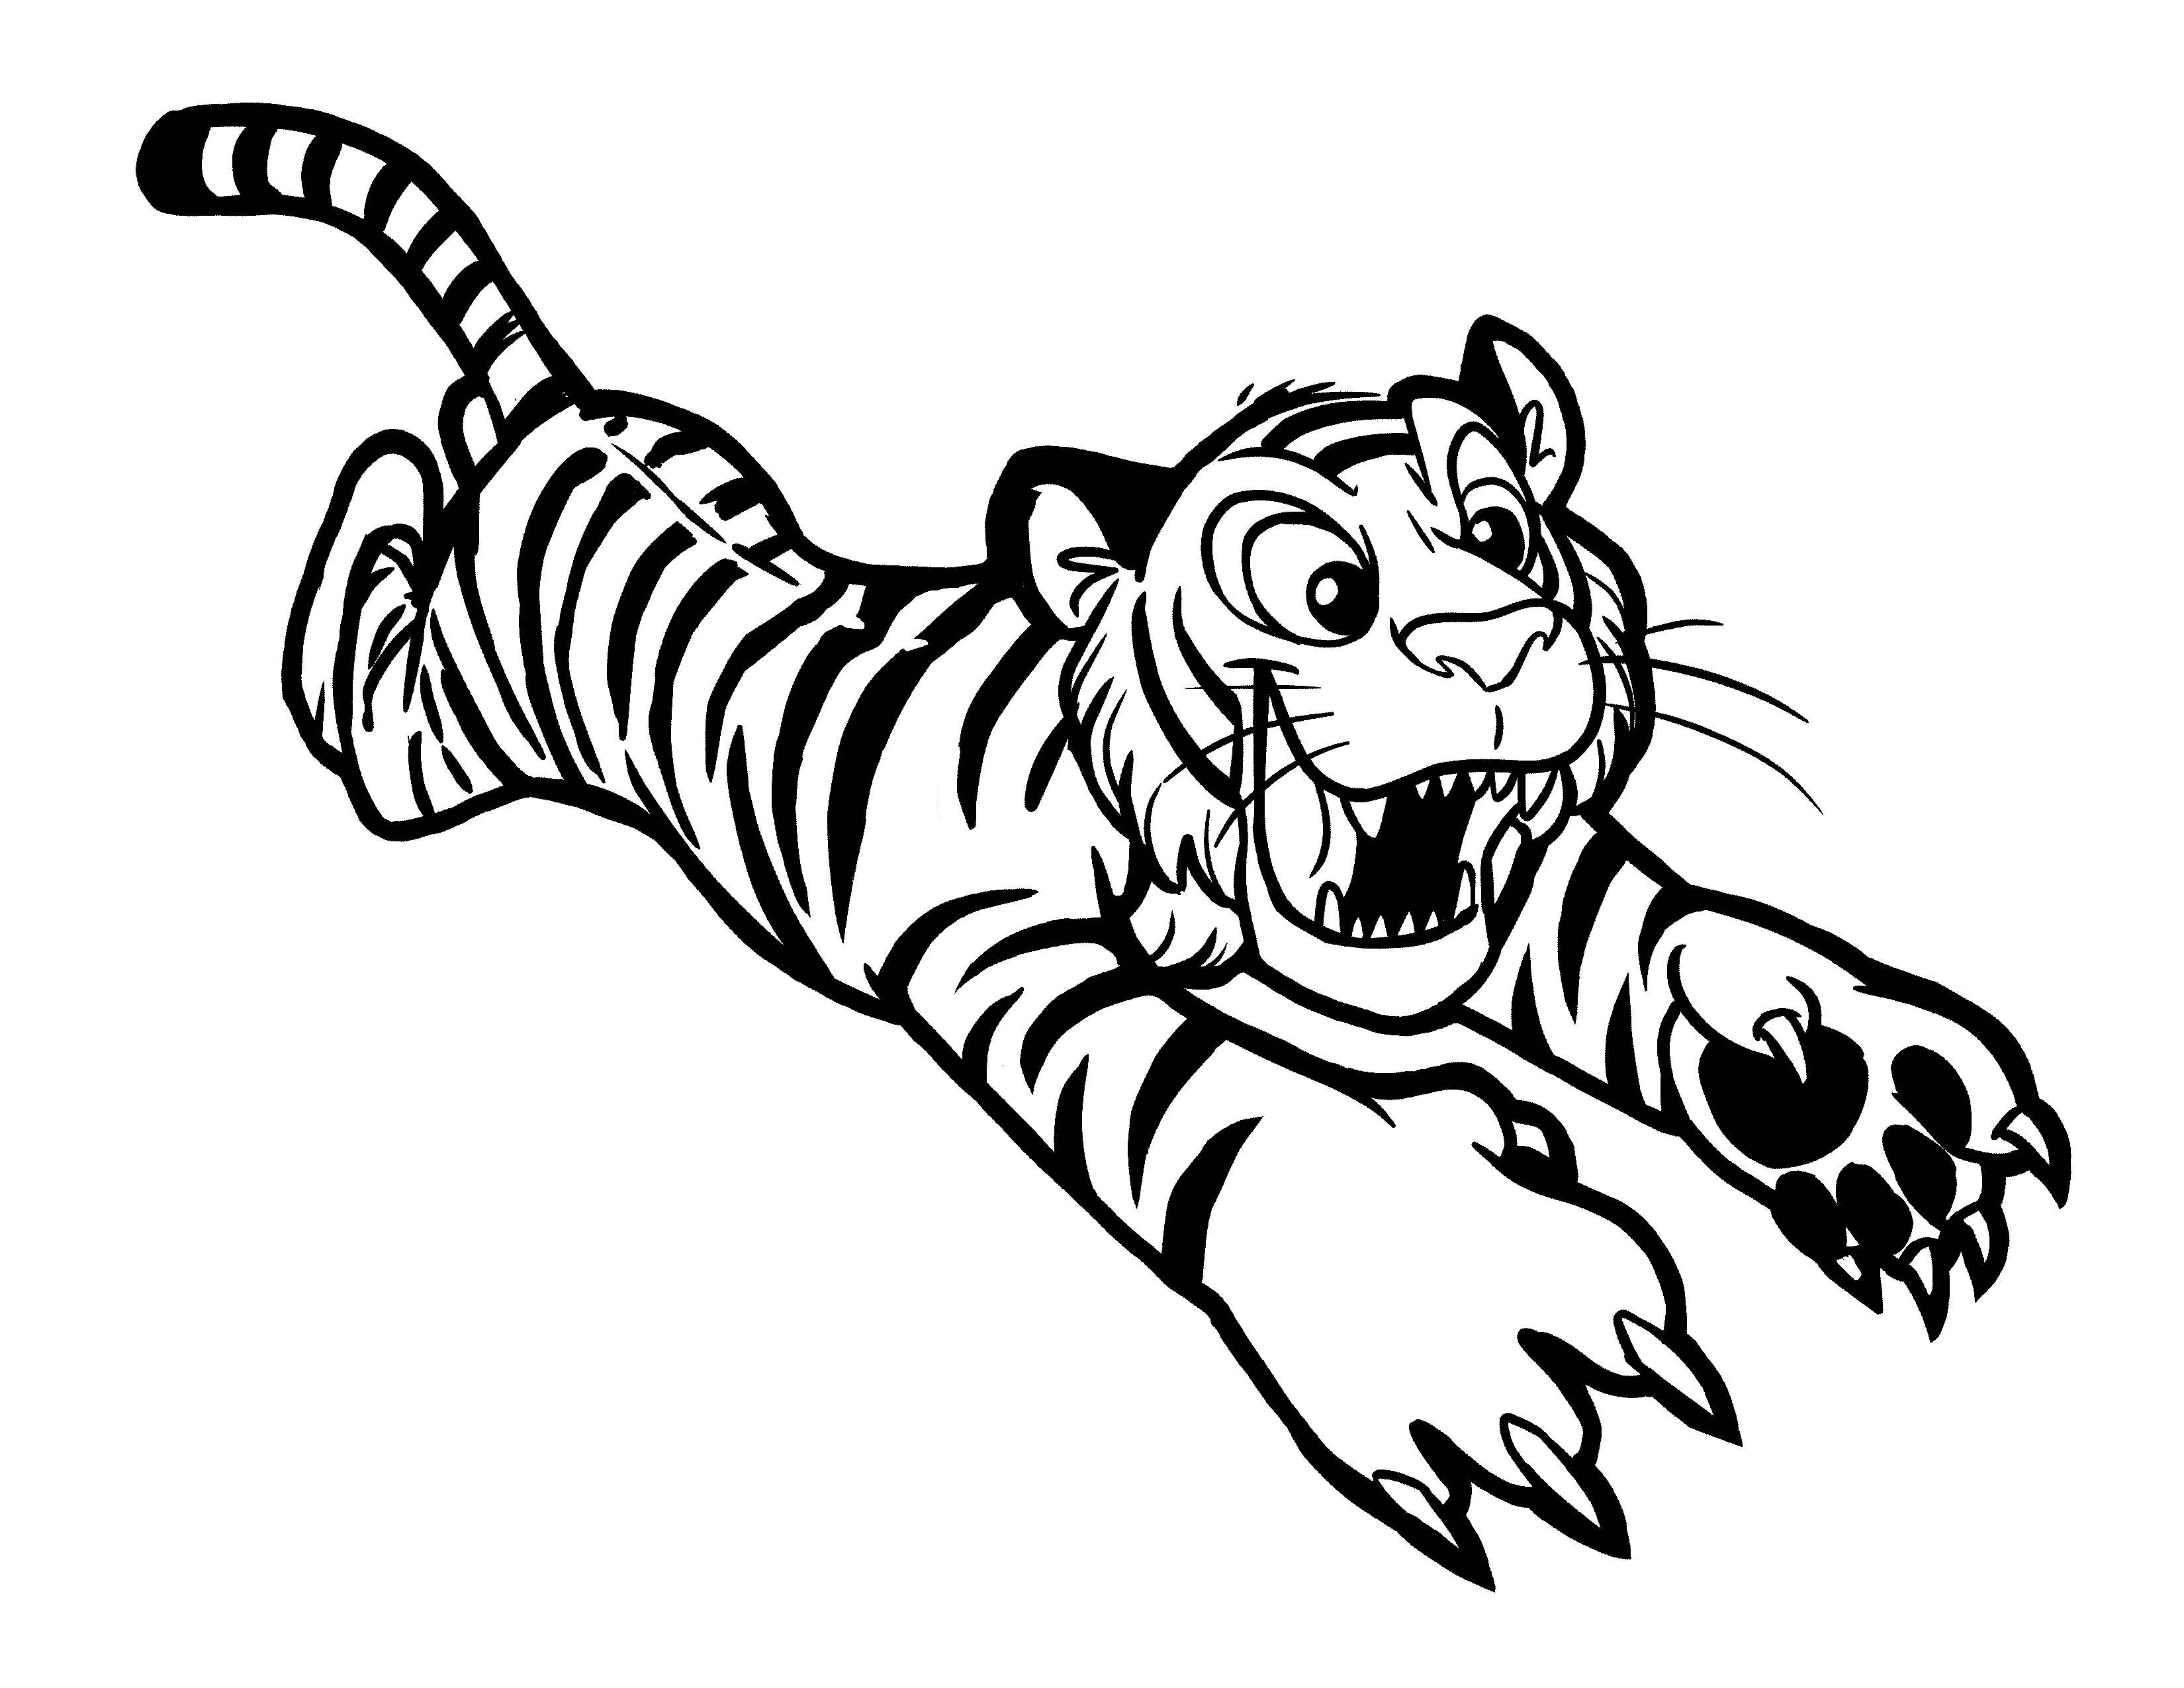 24 Baby Tiger Coloring Pages Pictures | FREE COLORING PAGES - Part 3